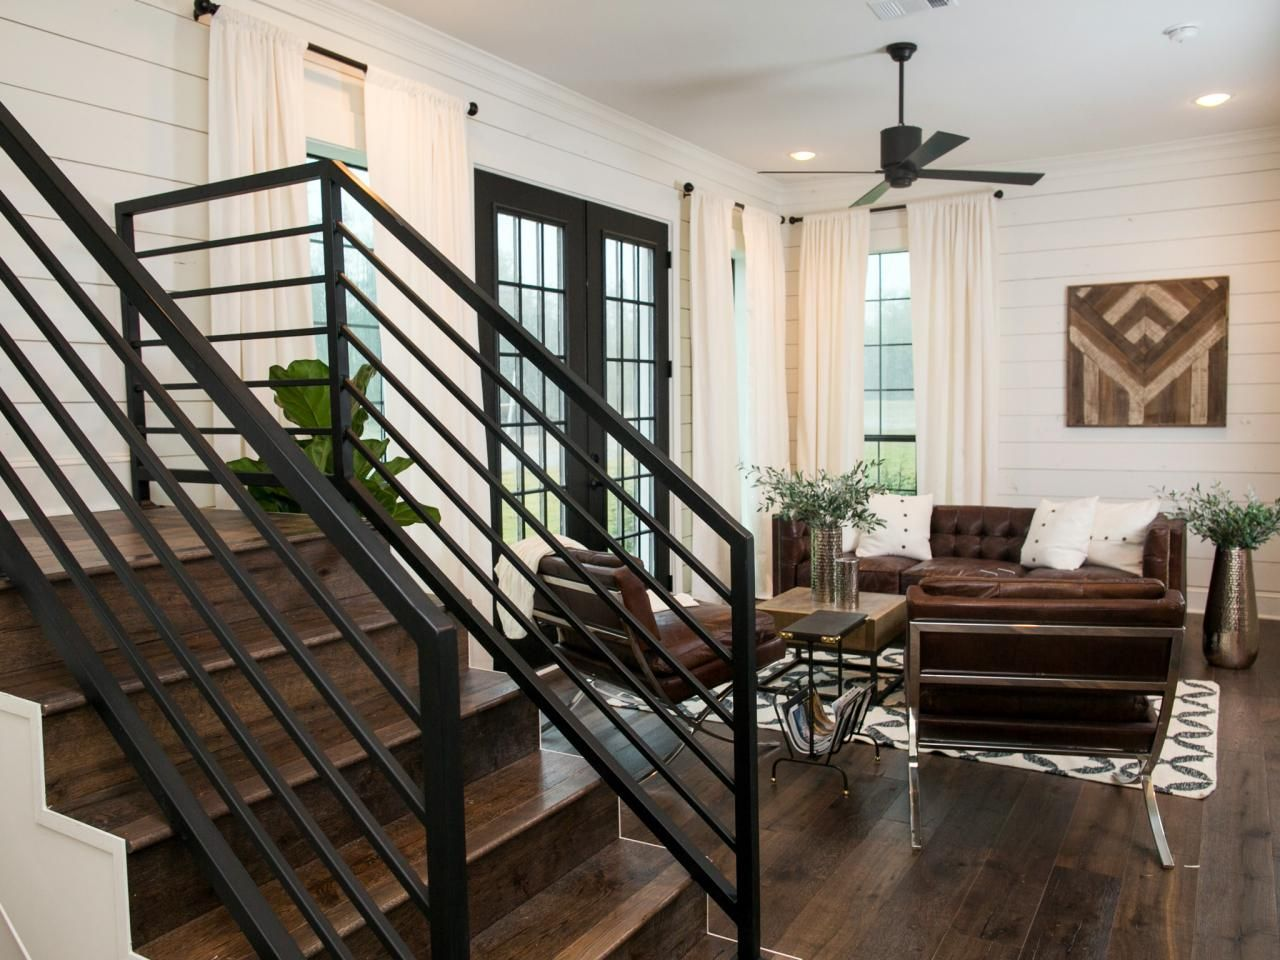 interior stair railing designs ideas and decors most.htm 5 things every  fixer upper  inspired farmhouse bathroom needs  5 things every  fixer upper  inspired